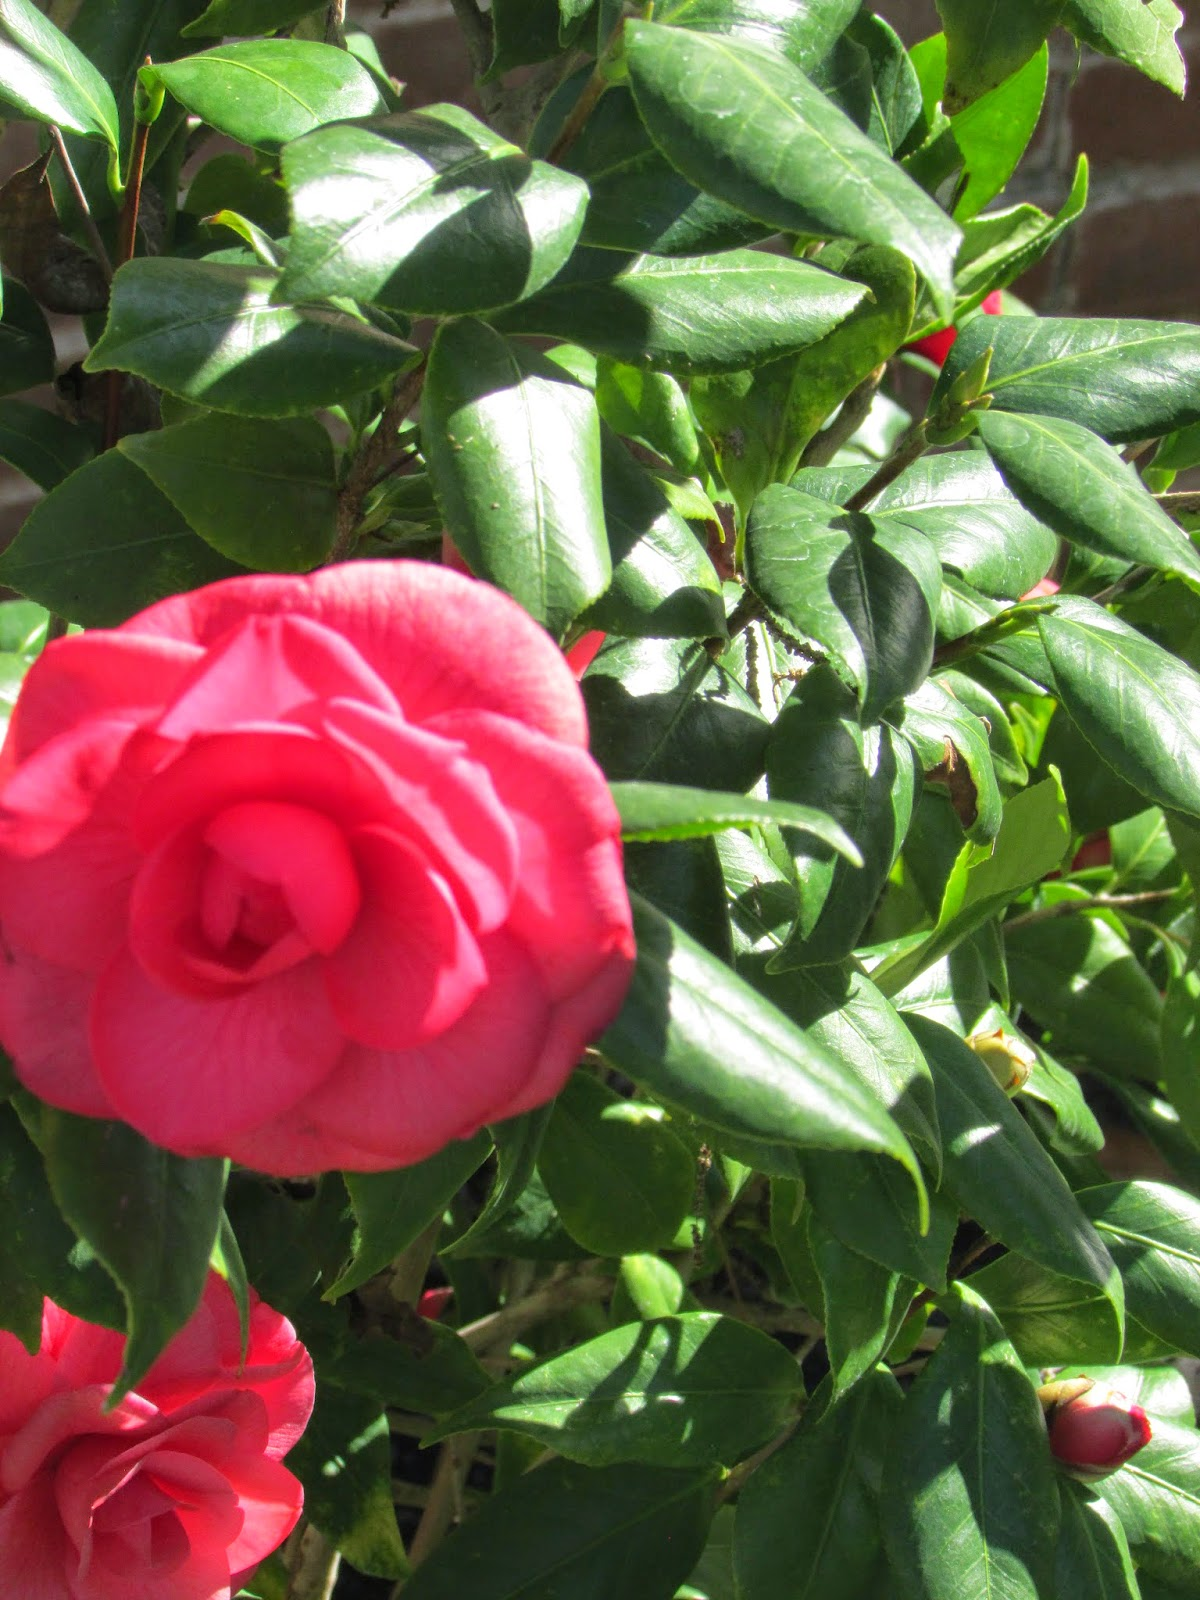 http://agrilife.org/etg/2012/12/13/camelias-southern-charm-with-a-long-history/